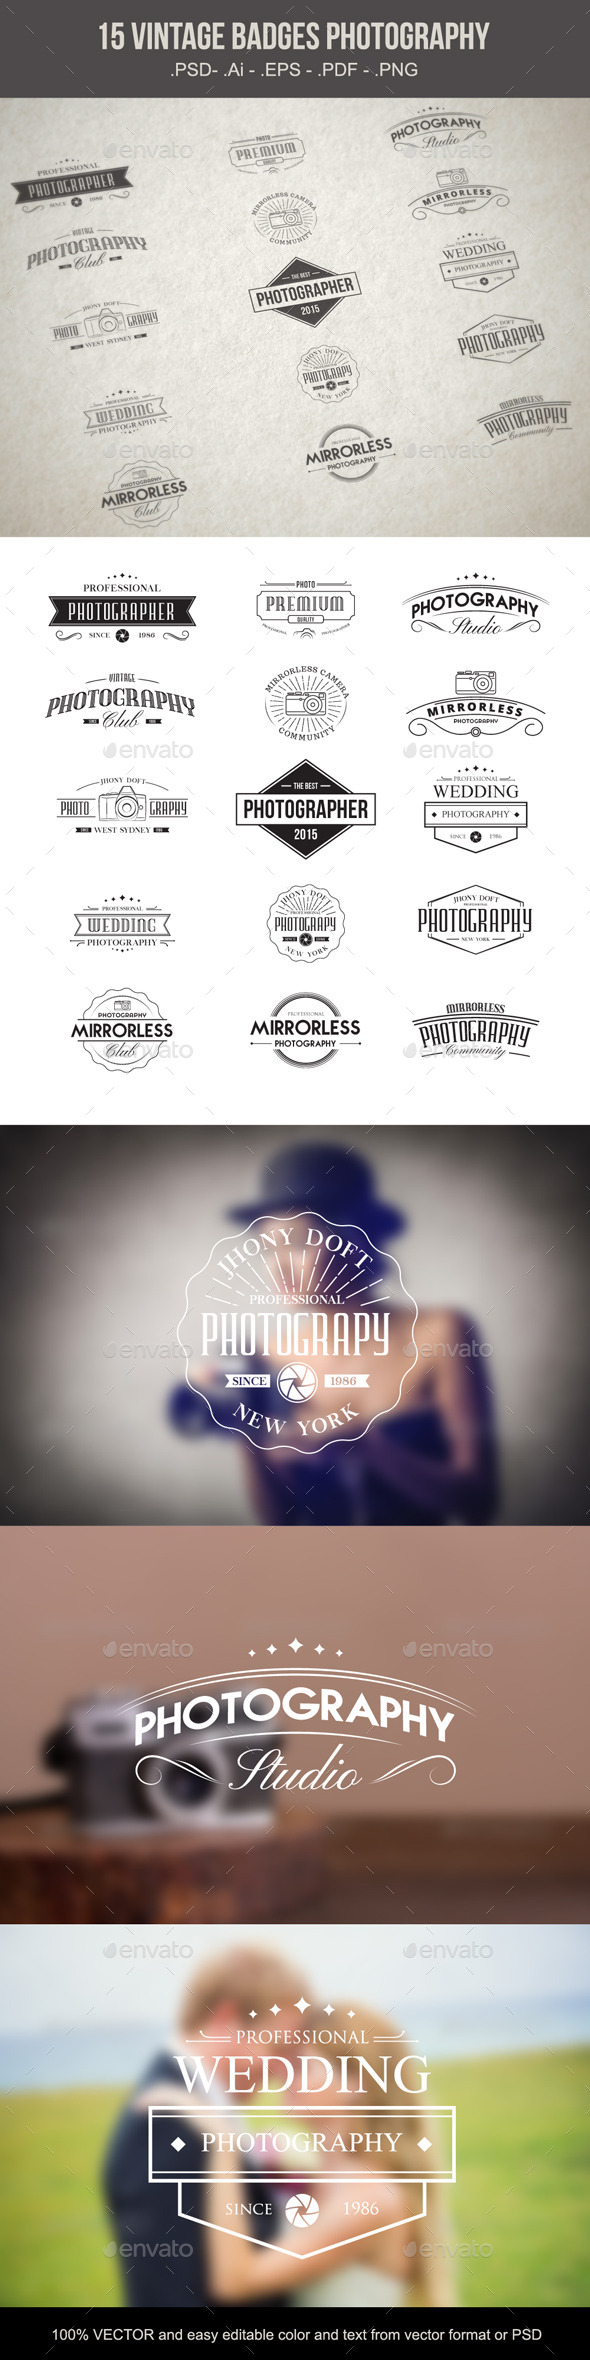 Vintage Badges Photography - Decorative Symbols Decorative